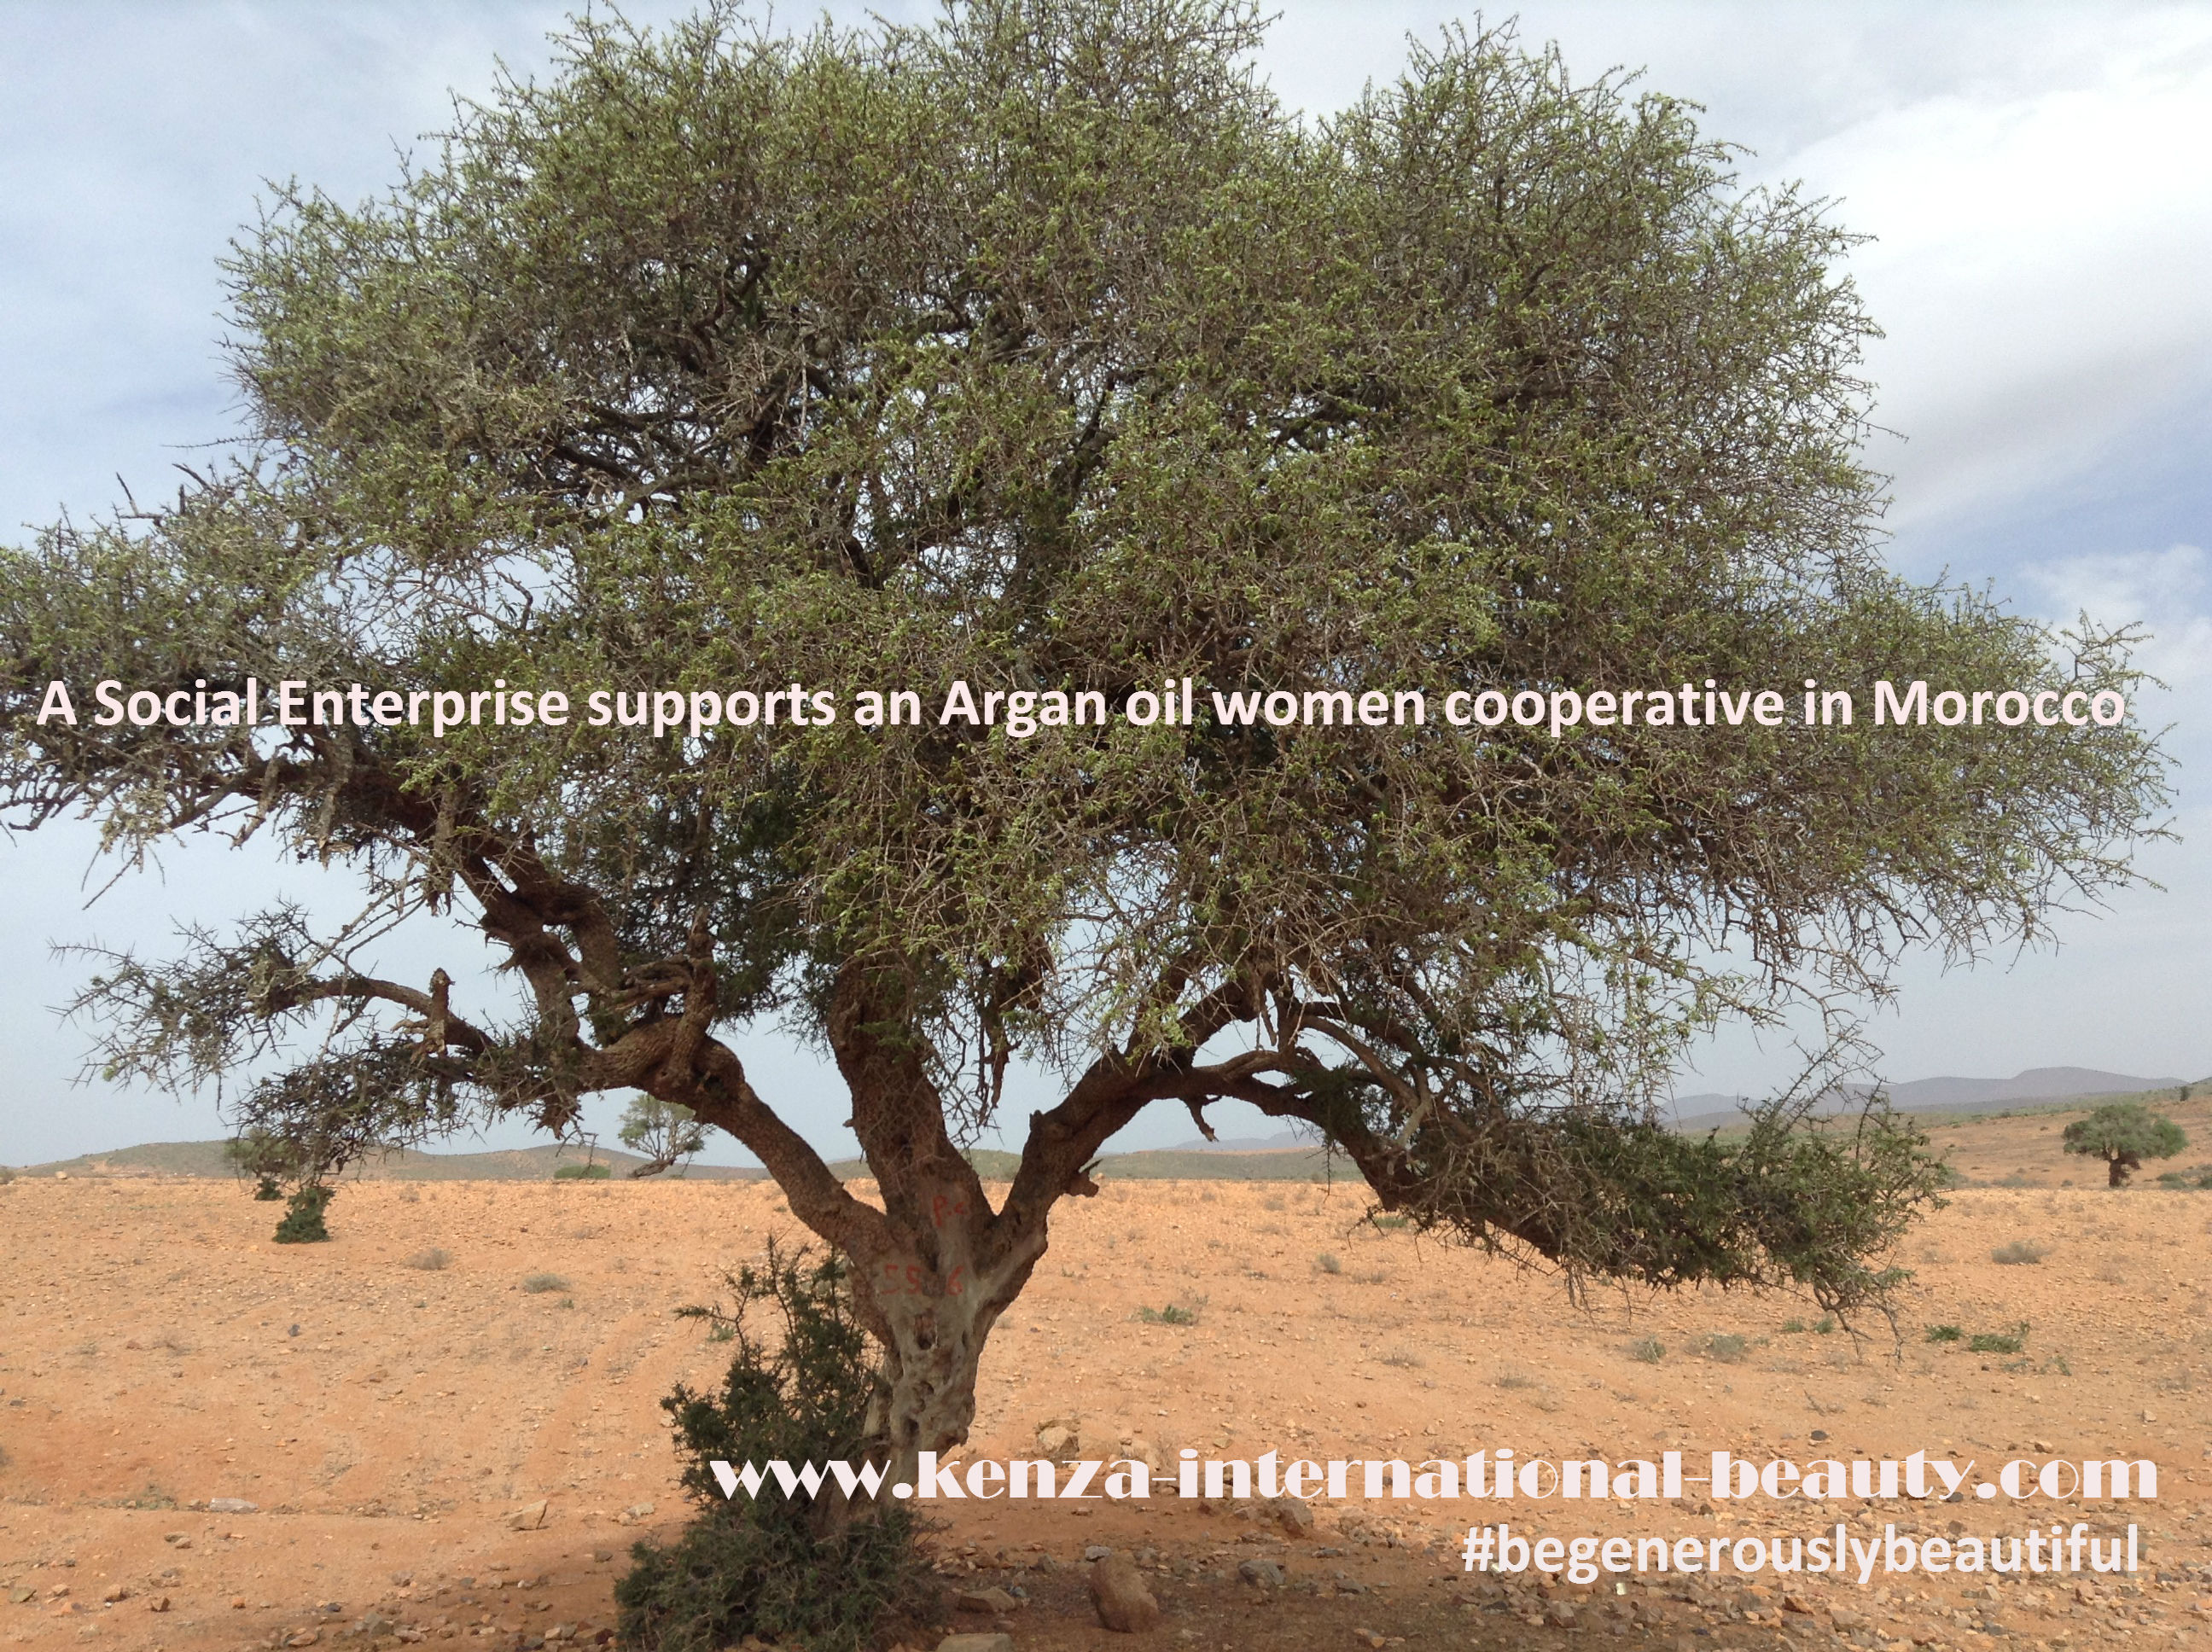 A Social Enterprise supports an Argan oil women cooperative in Morocco